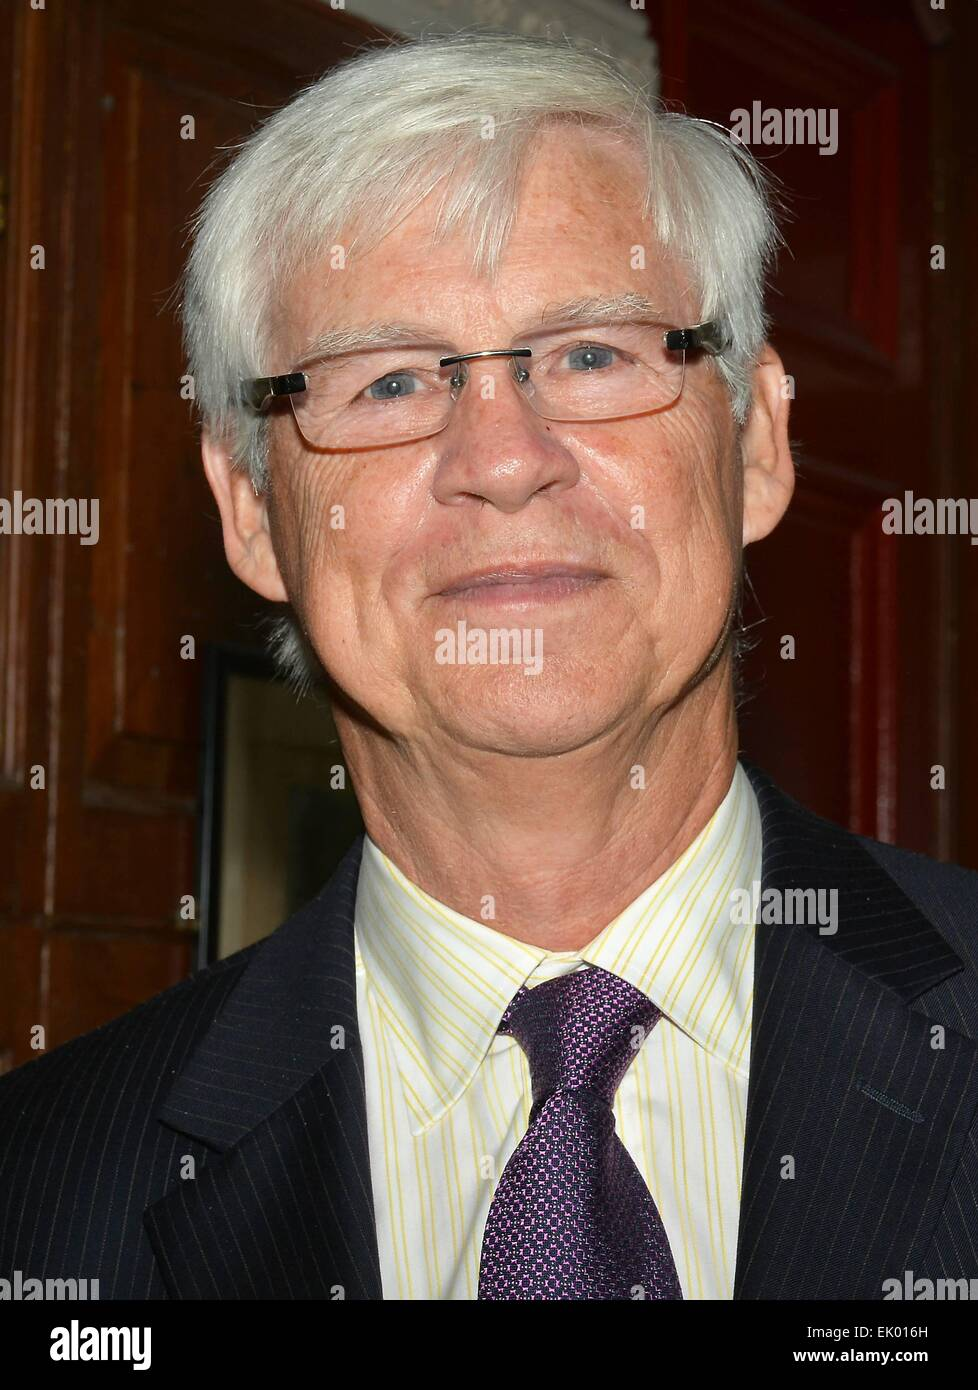 Nobel Prize winner Robert Engle received the Gold Medal of Honorary Patronage of the Trinity College Philosophical - Stock Image